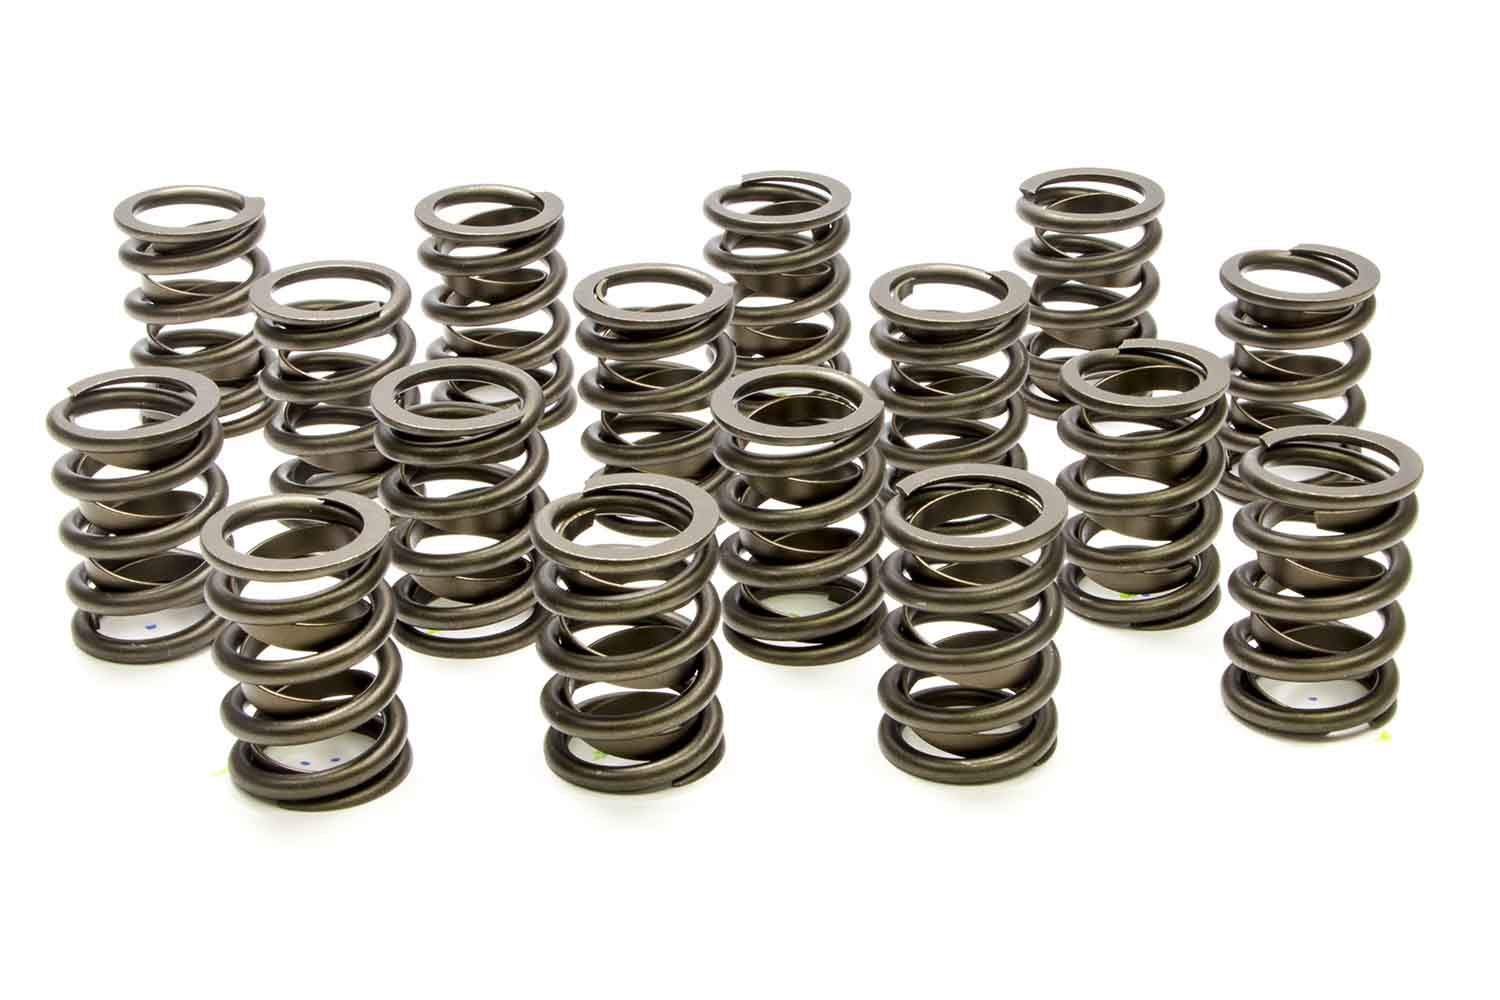 PAC Racing Springs PAC-1923 Valve Spring, Hot Rod Series, Single Spring / Damper, 425 lb/in Spring Rate, 1.050 in Coil Bind, 1.460 in OD, Various V8 Applications, Set of 16